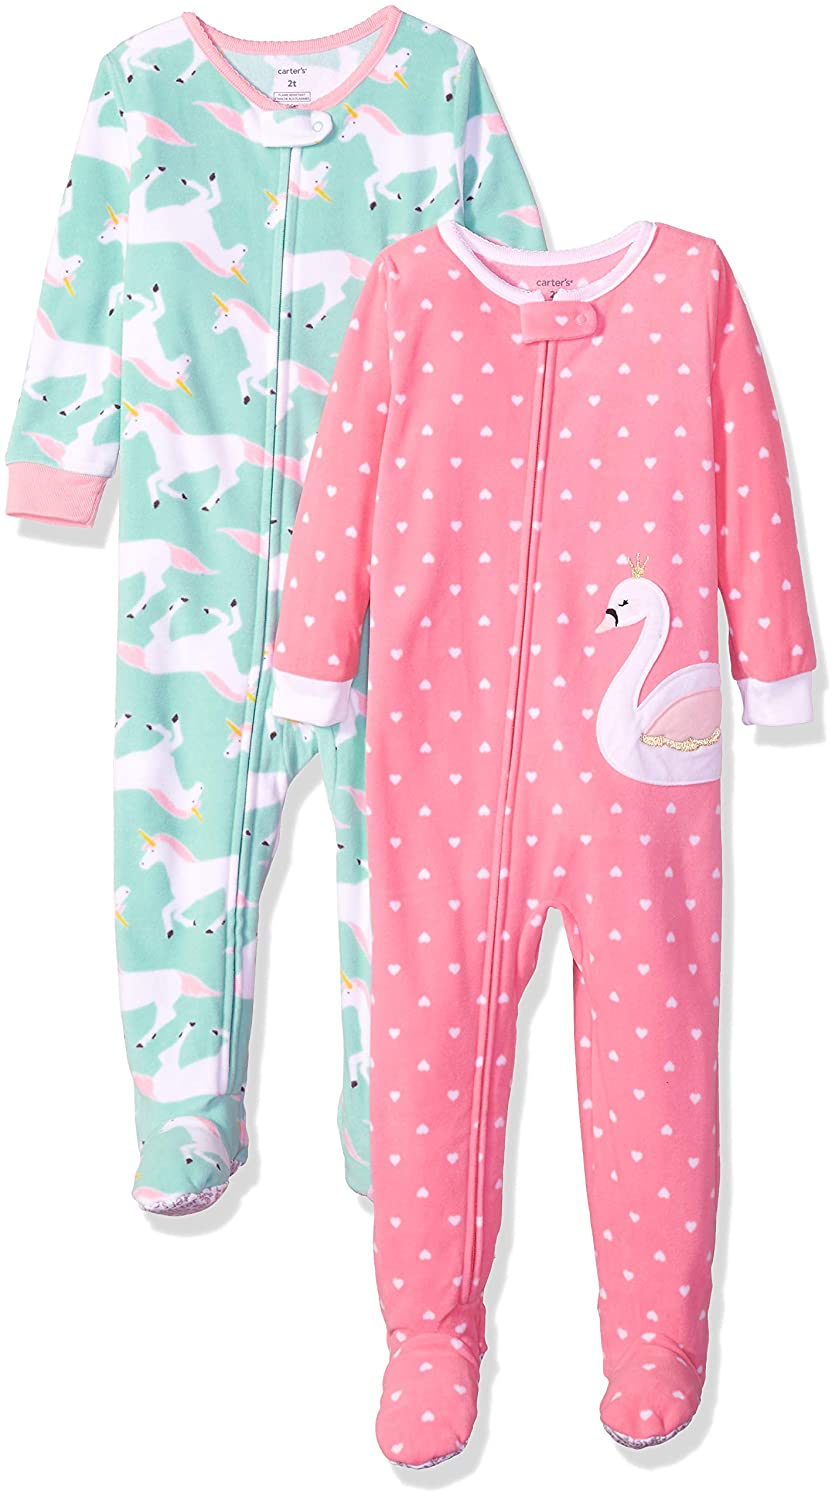 a74682481 Clothing Jumpsuits & Rompers Carters Baby and Toddler Girls 2-Pack Fleece  Footed Pajamas Carter's